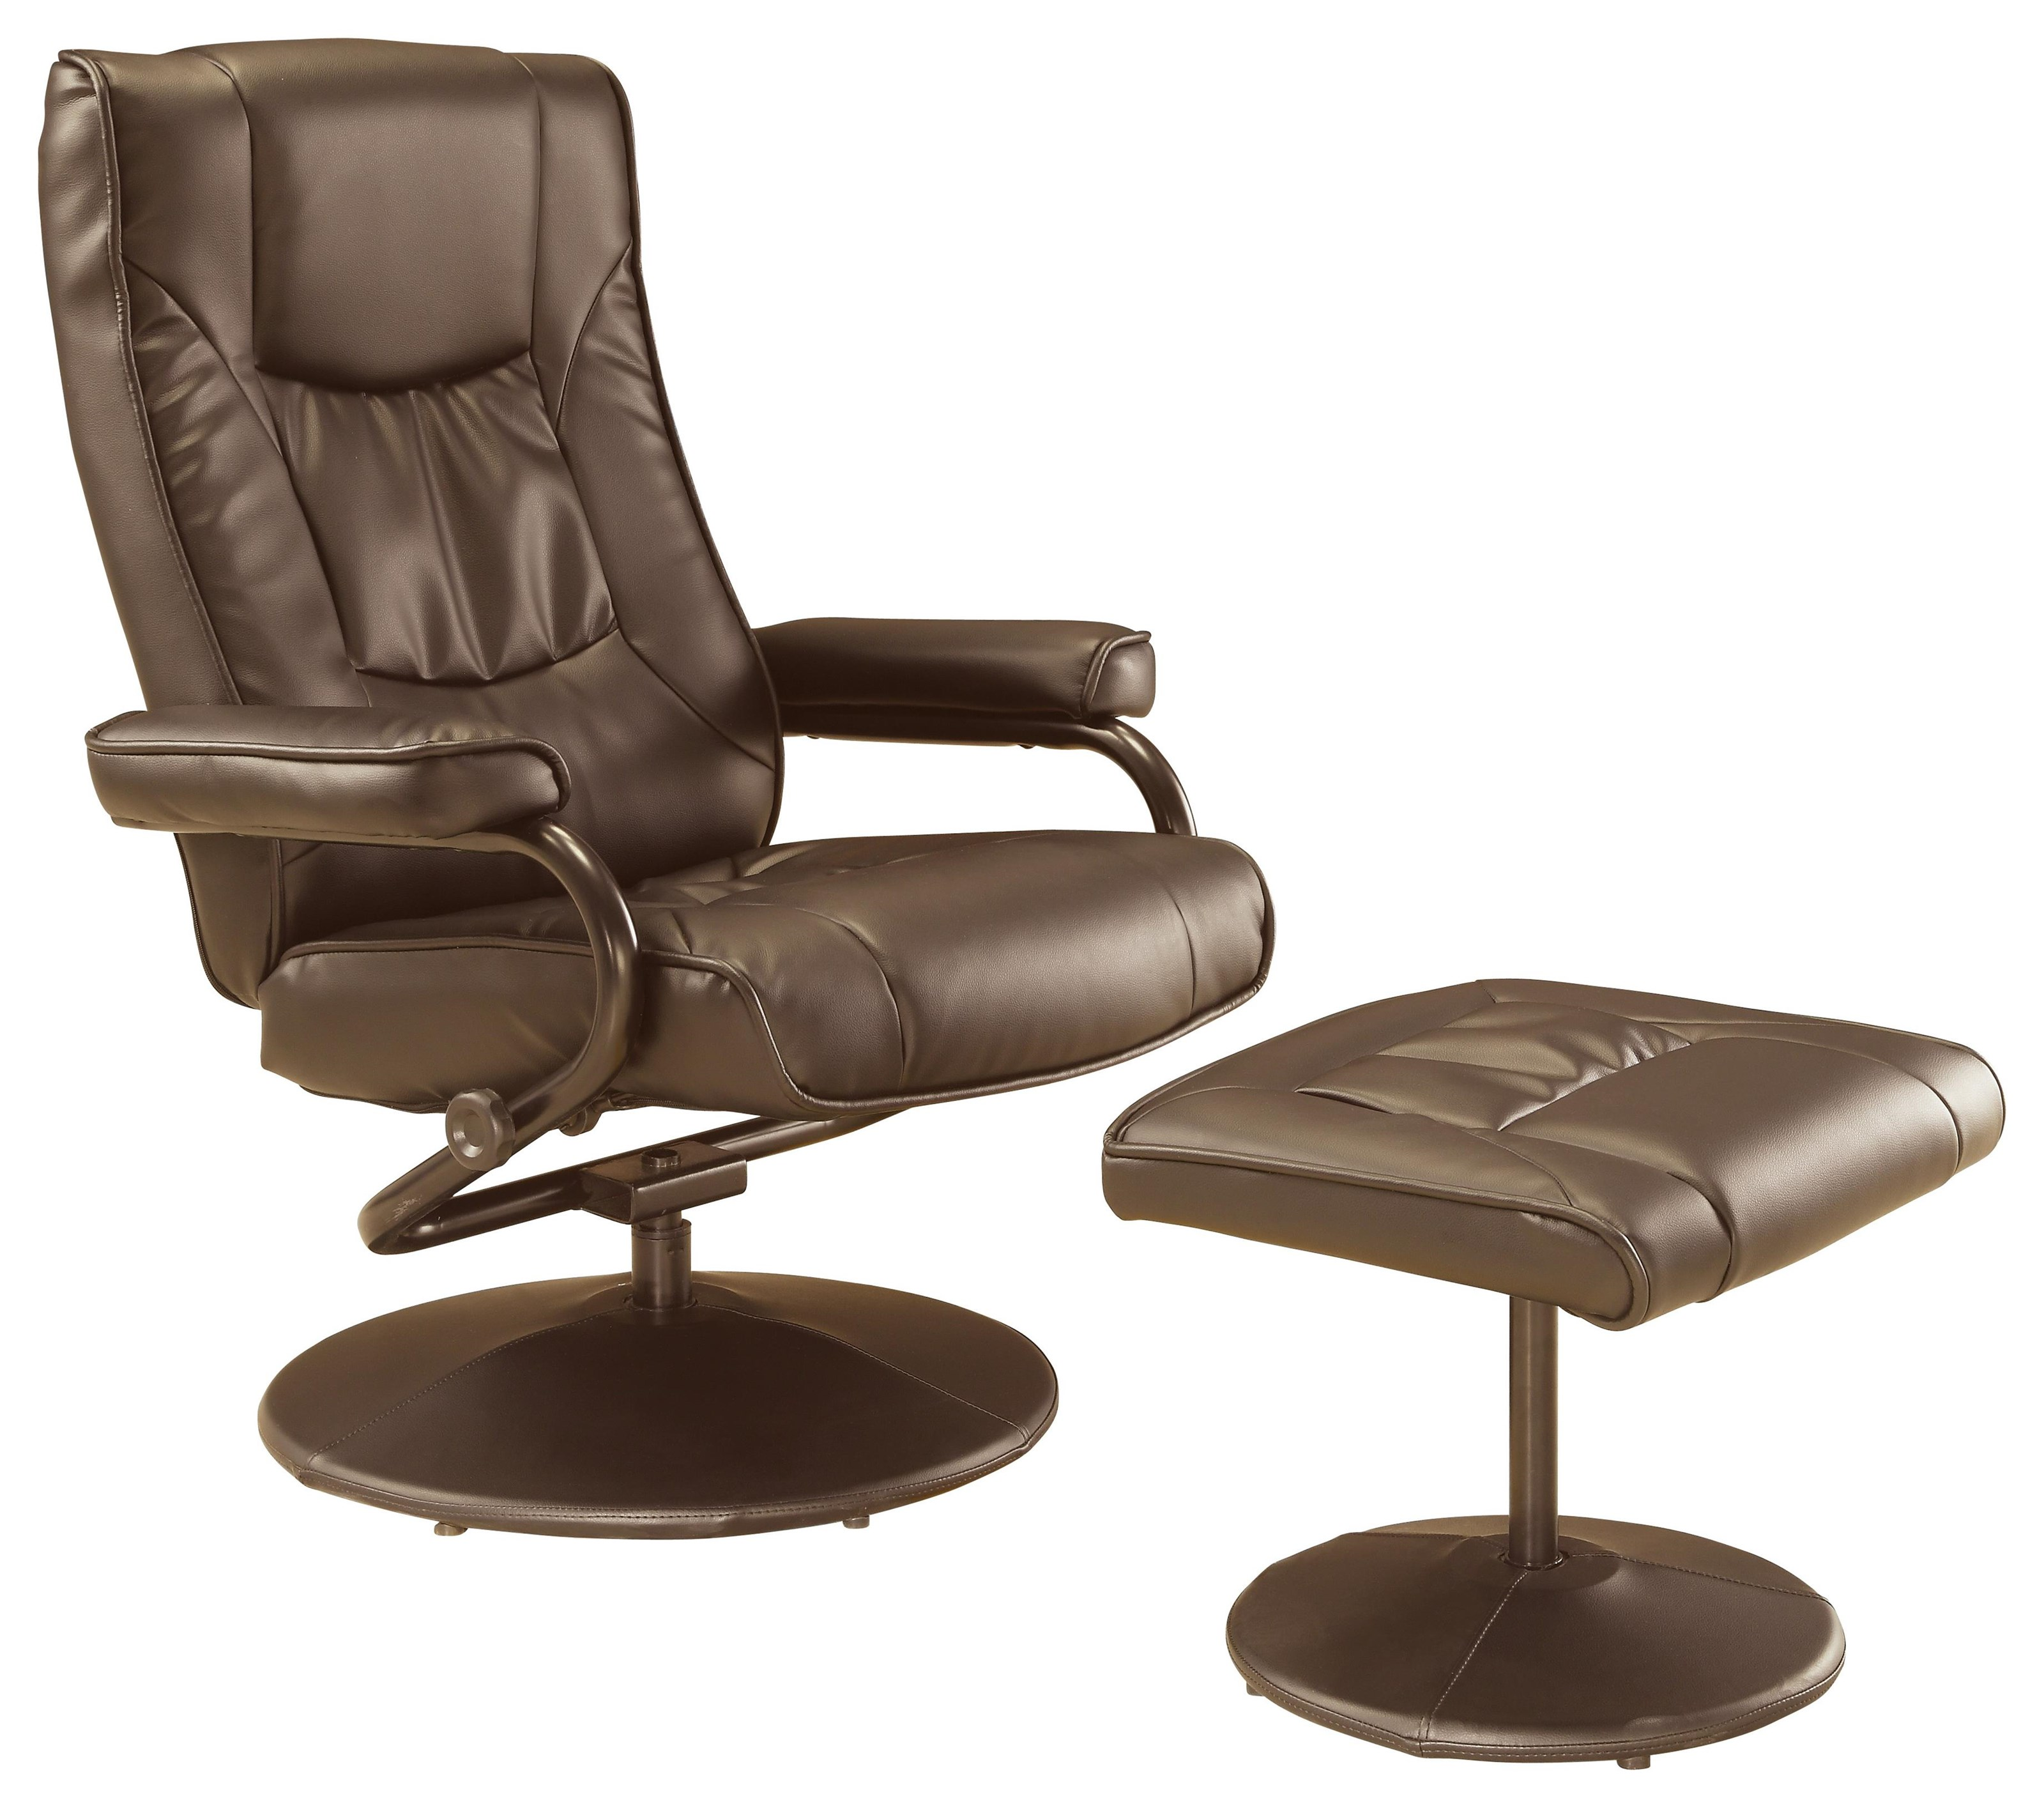 Chairs Brown Swivel Recliner and Ottoman by Offshore Furniture Source at Sam Levitz Furniture